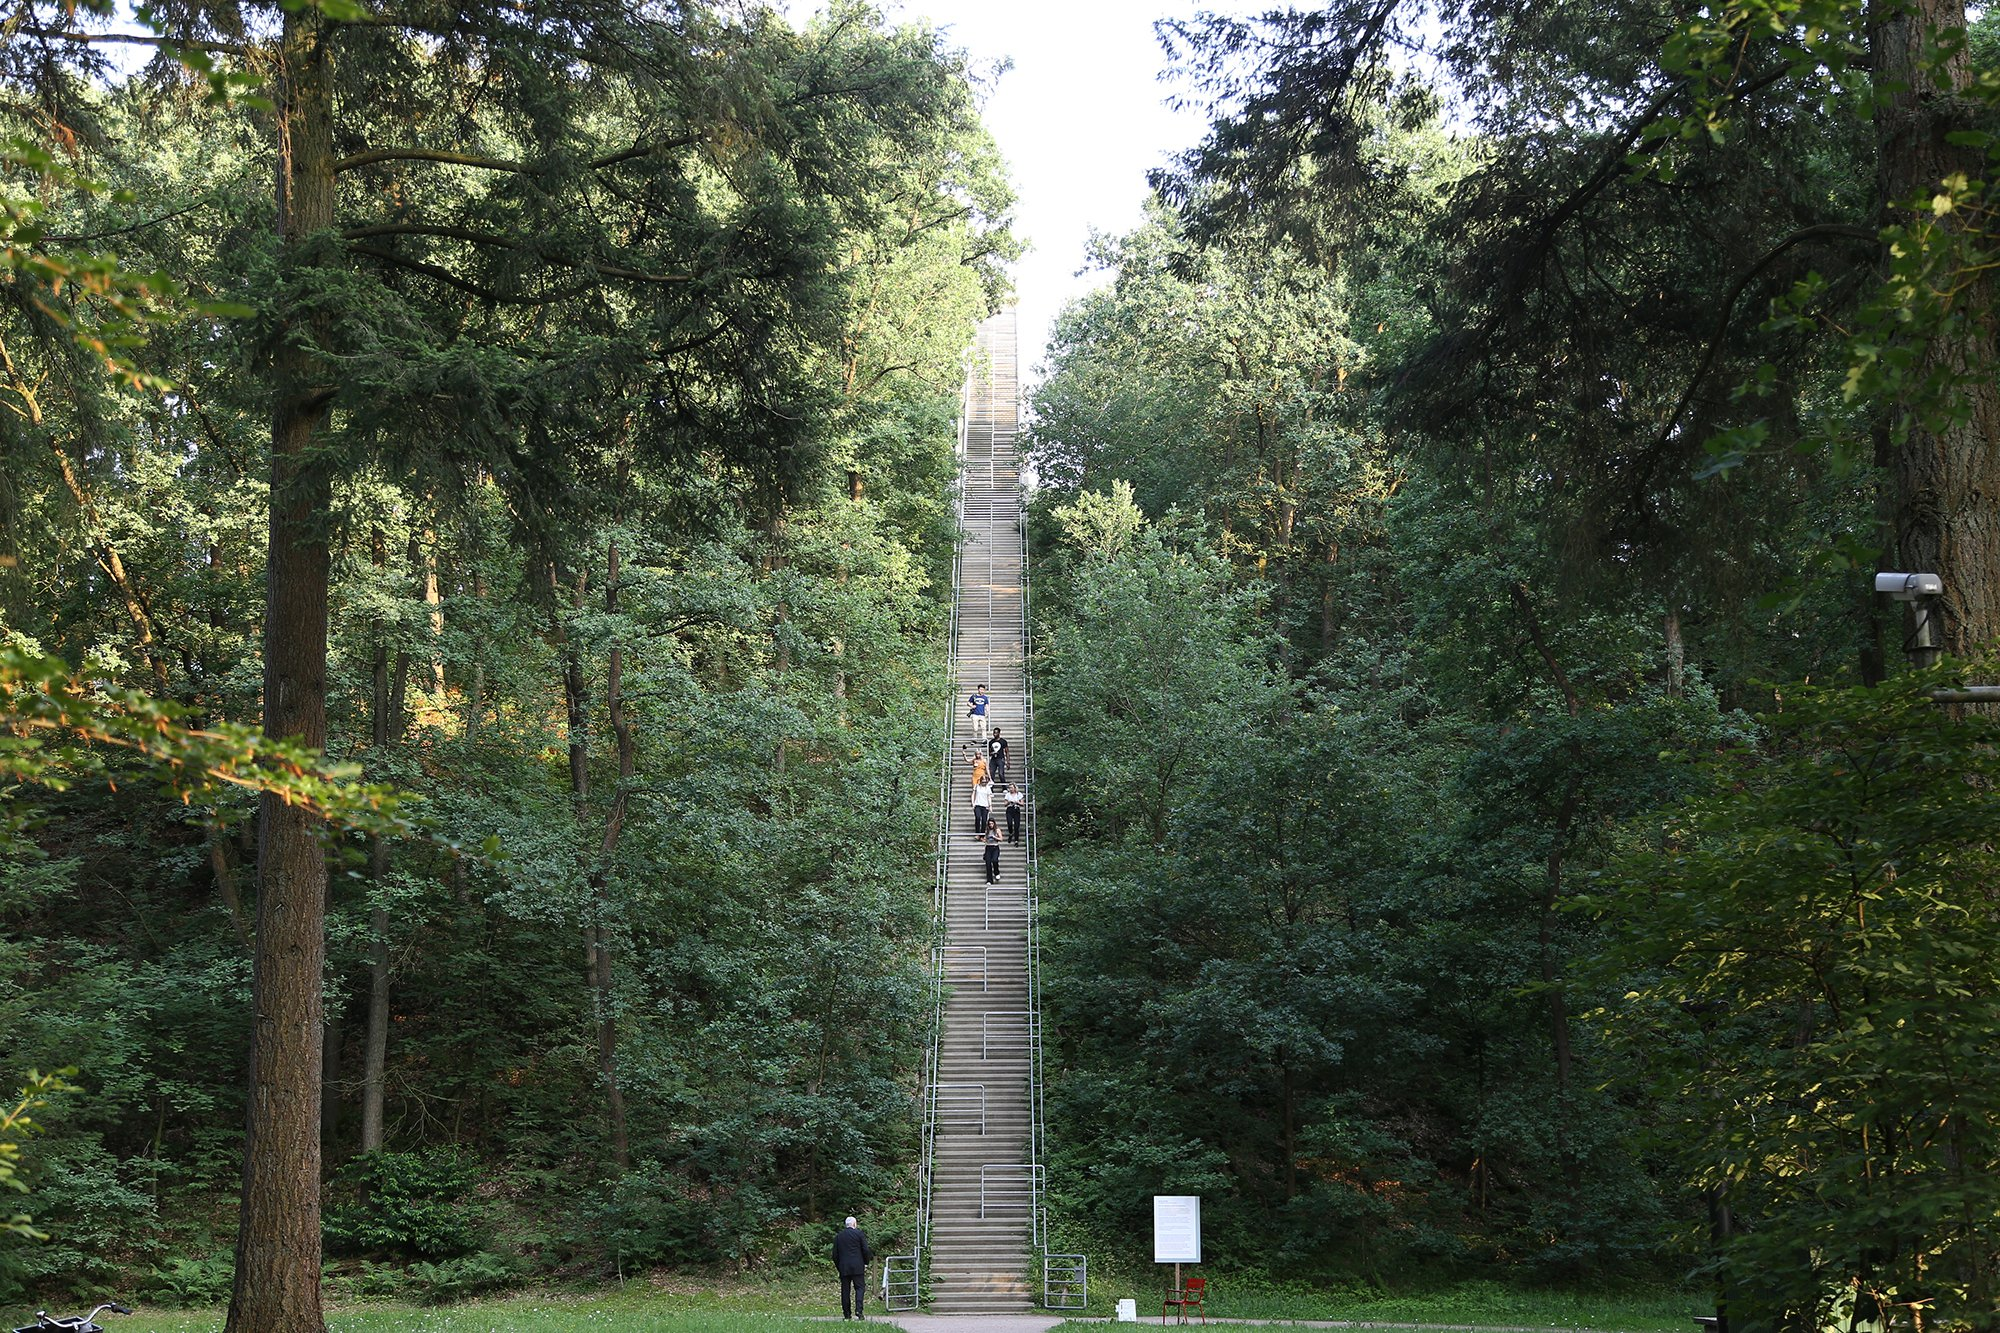 Long stairway leading into the sky among the trees of the sculpture park of Kroller Muller Museum in De Hoge Veluwe